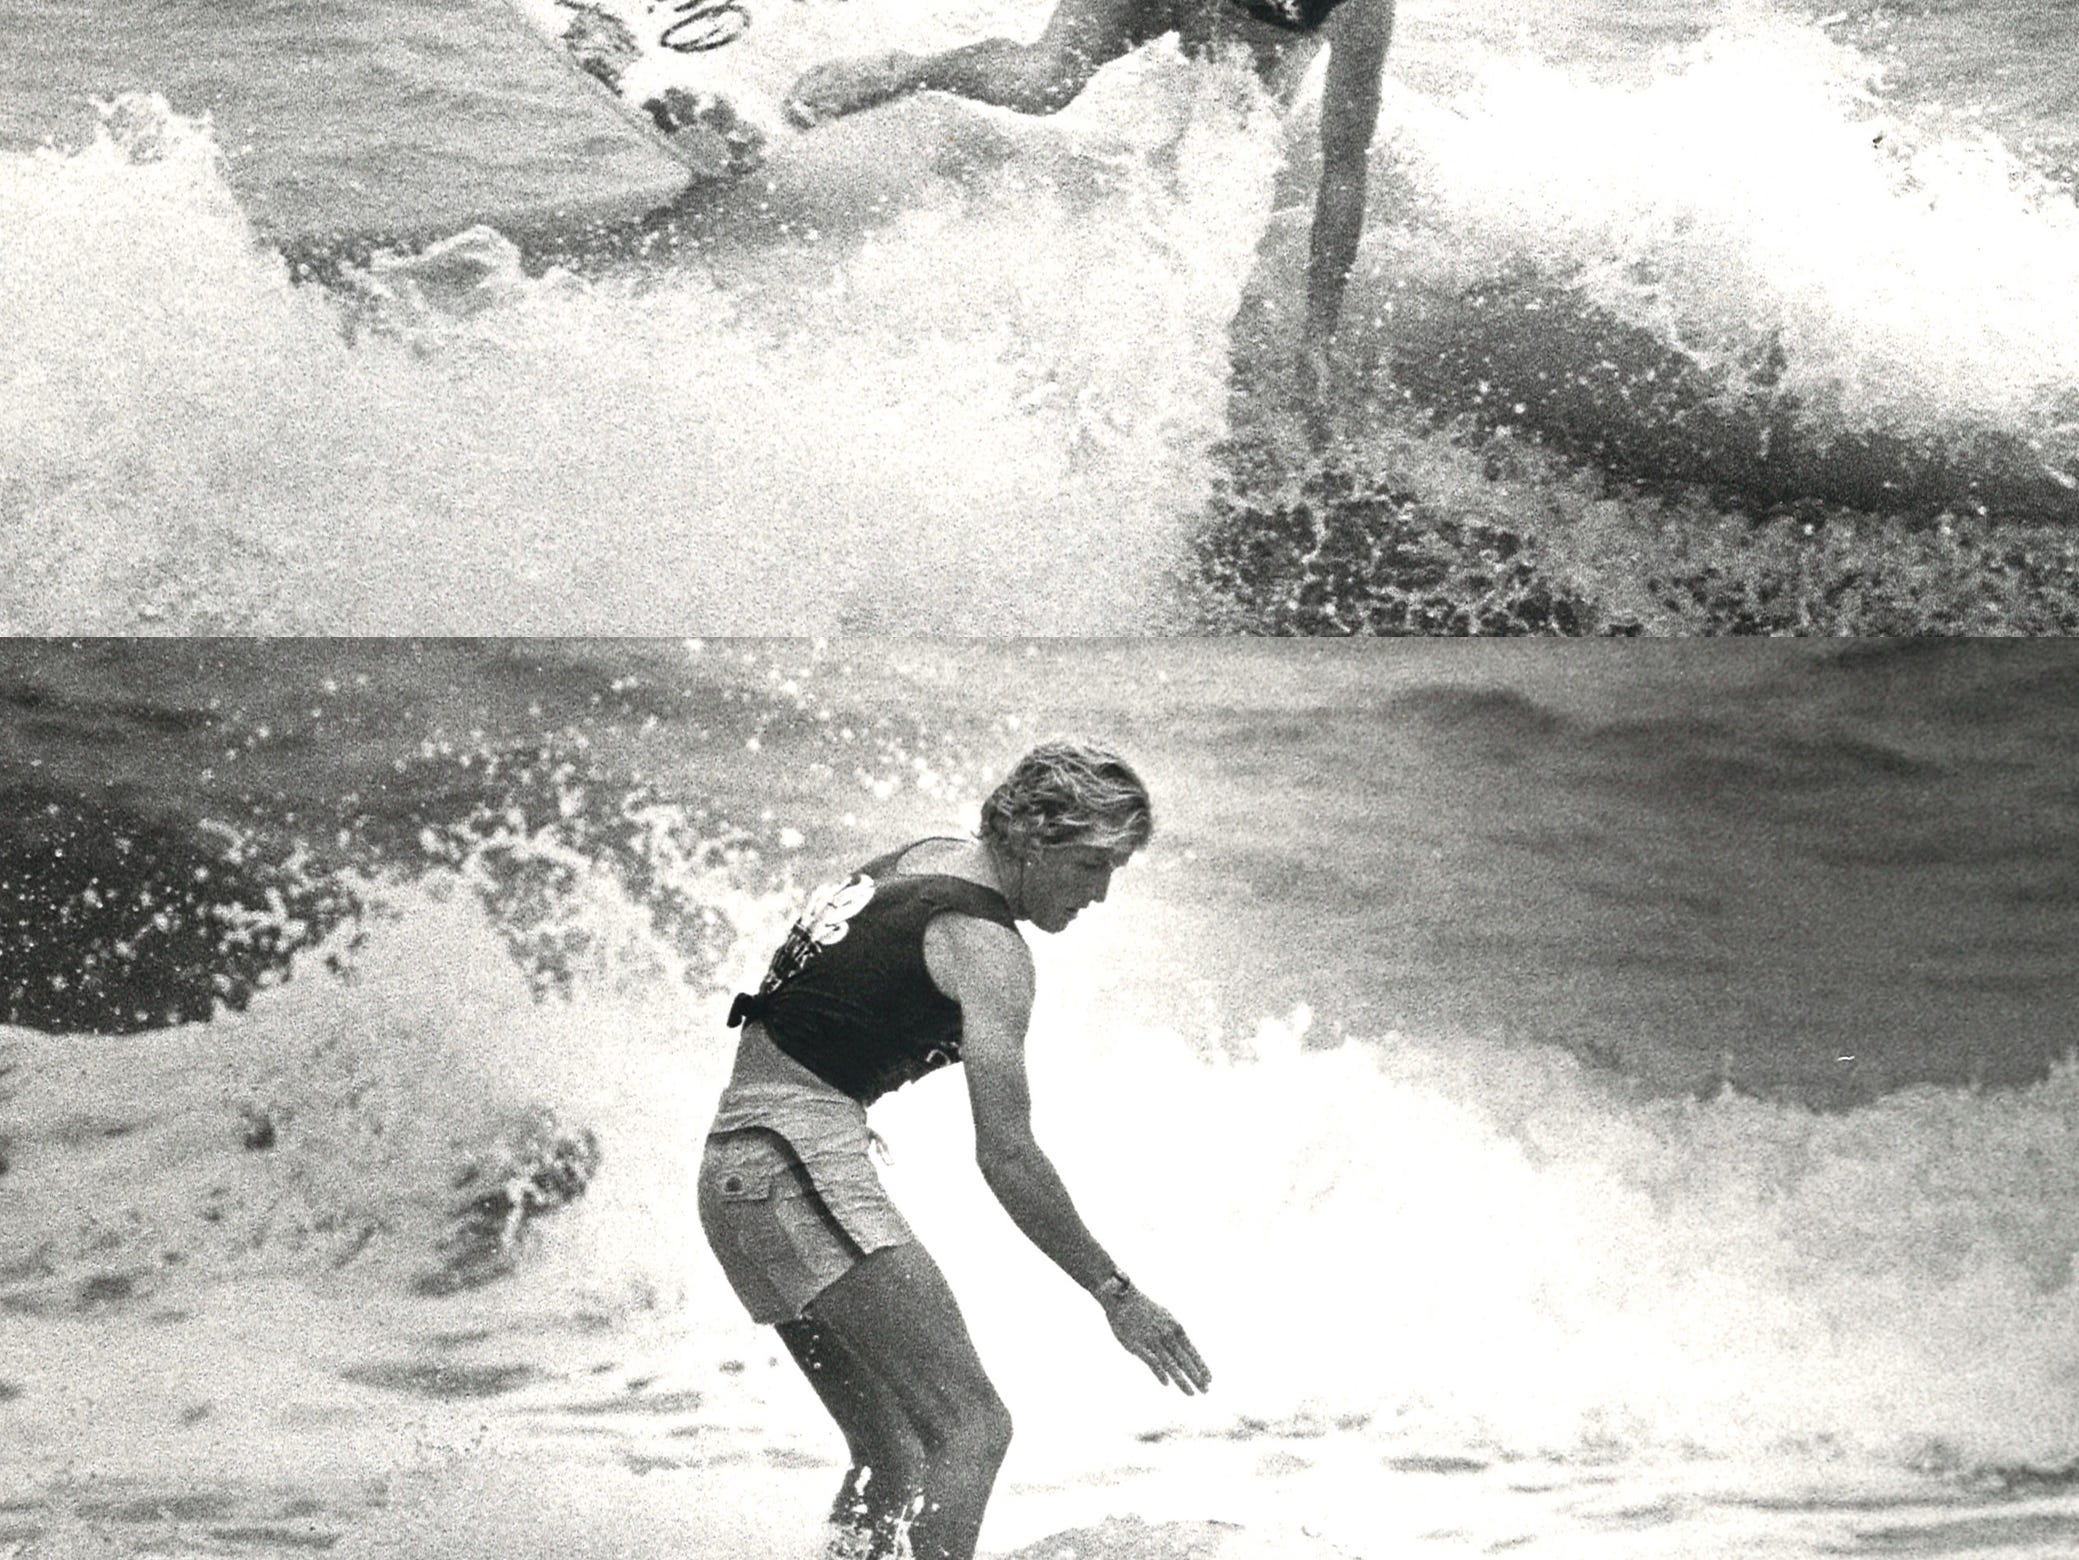 Matt Kechele of Cocoa Beach, Florida won the first Sundek Classic Surfing Tournament held at J.P. Luby Surf Park in Corpus Christi on April 1, 1984.